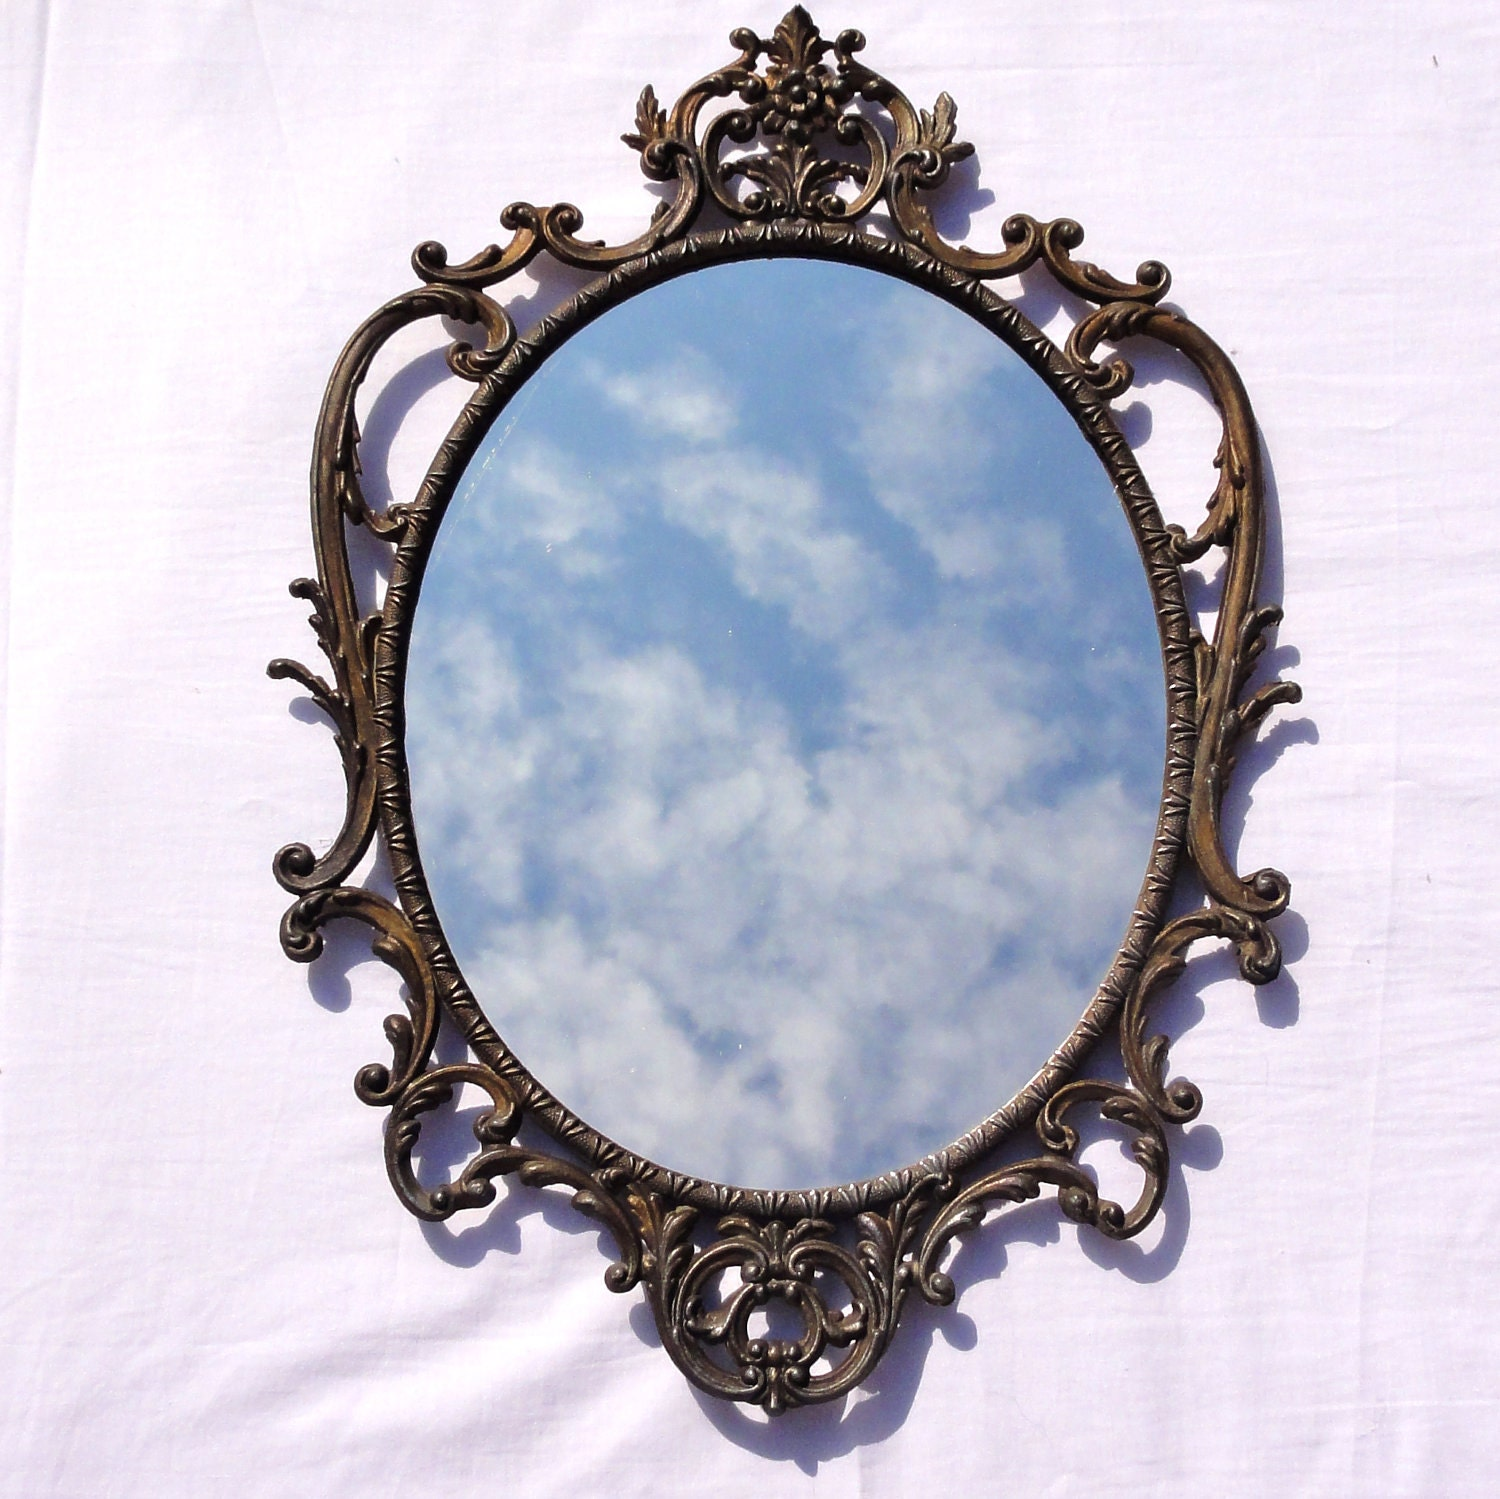 Vintage wall mirror rococo style decorated antique by for Antique style wall mirror